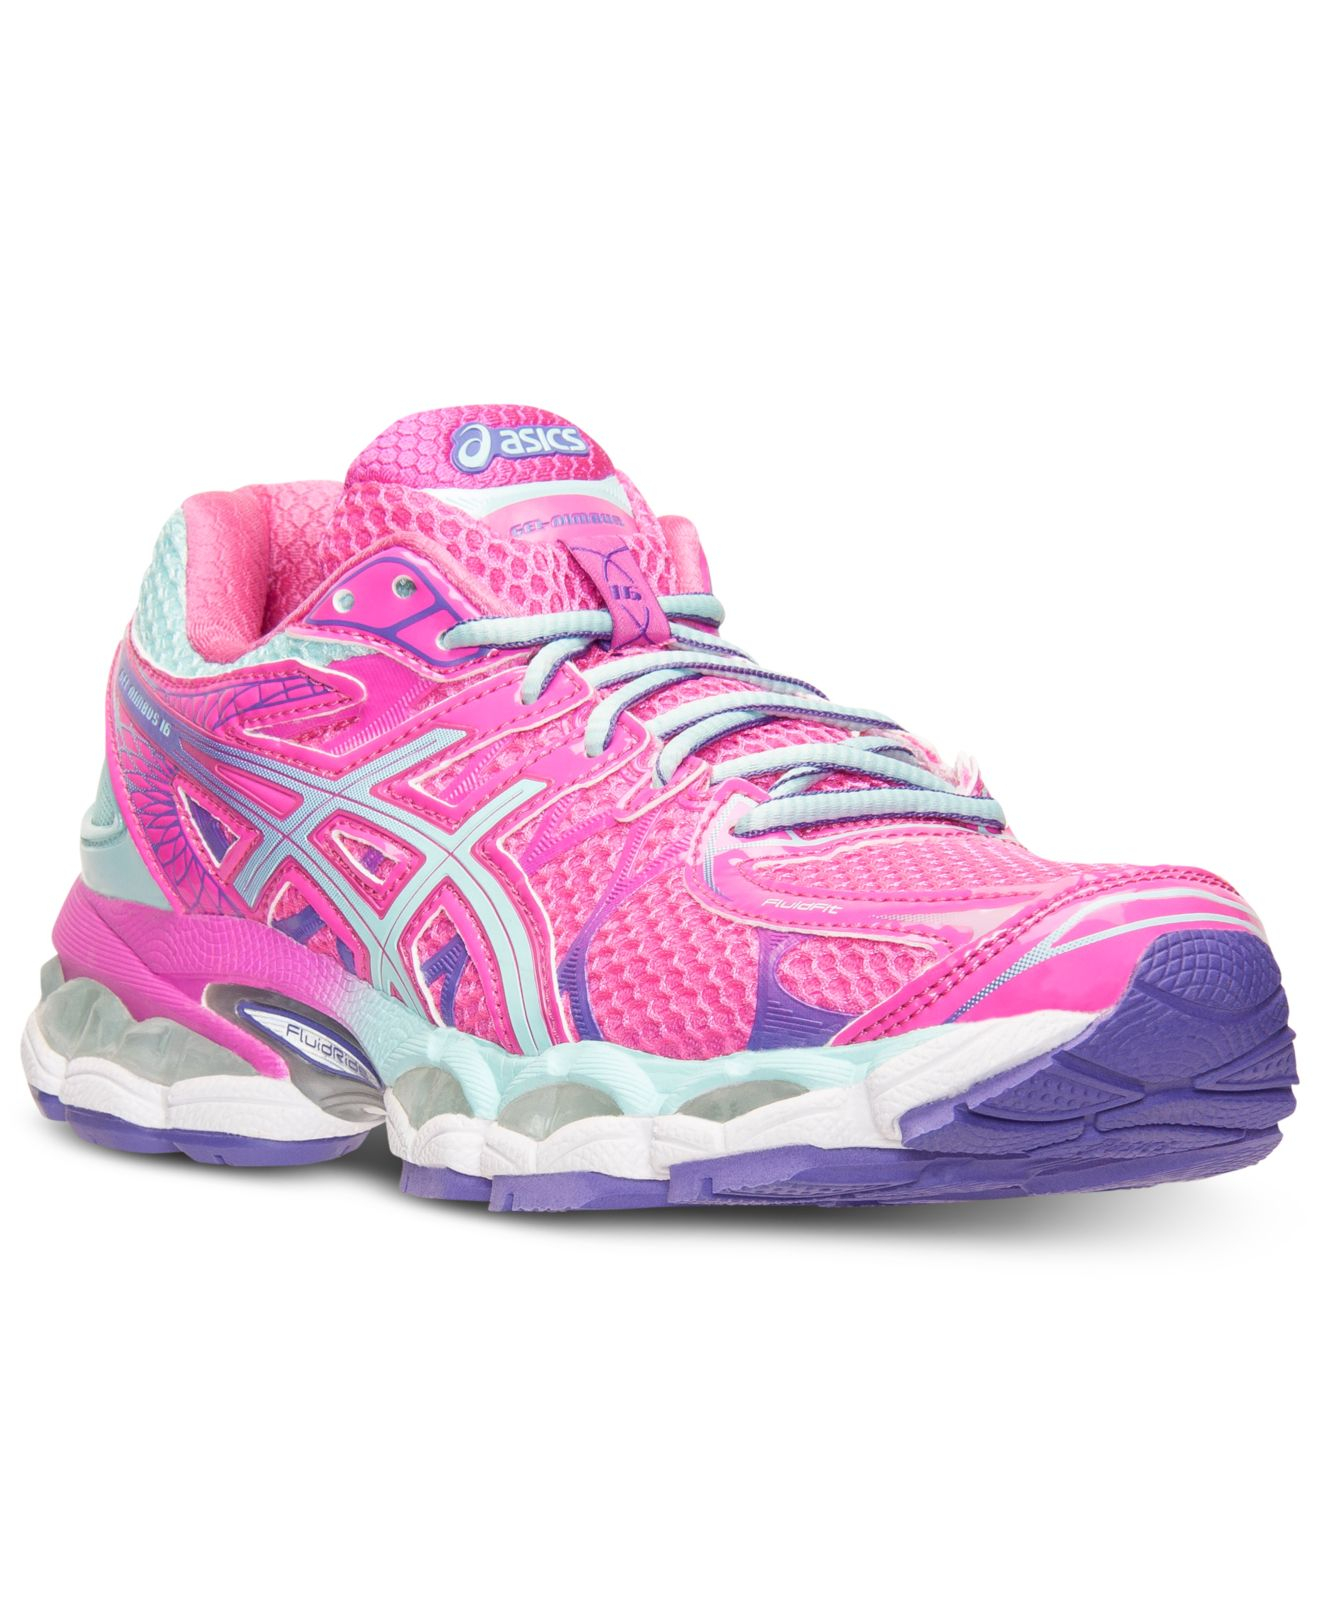 asics hot pink sneakers